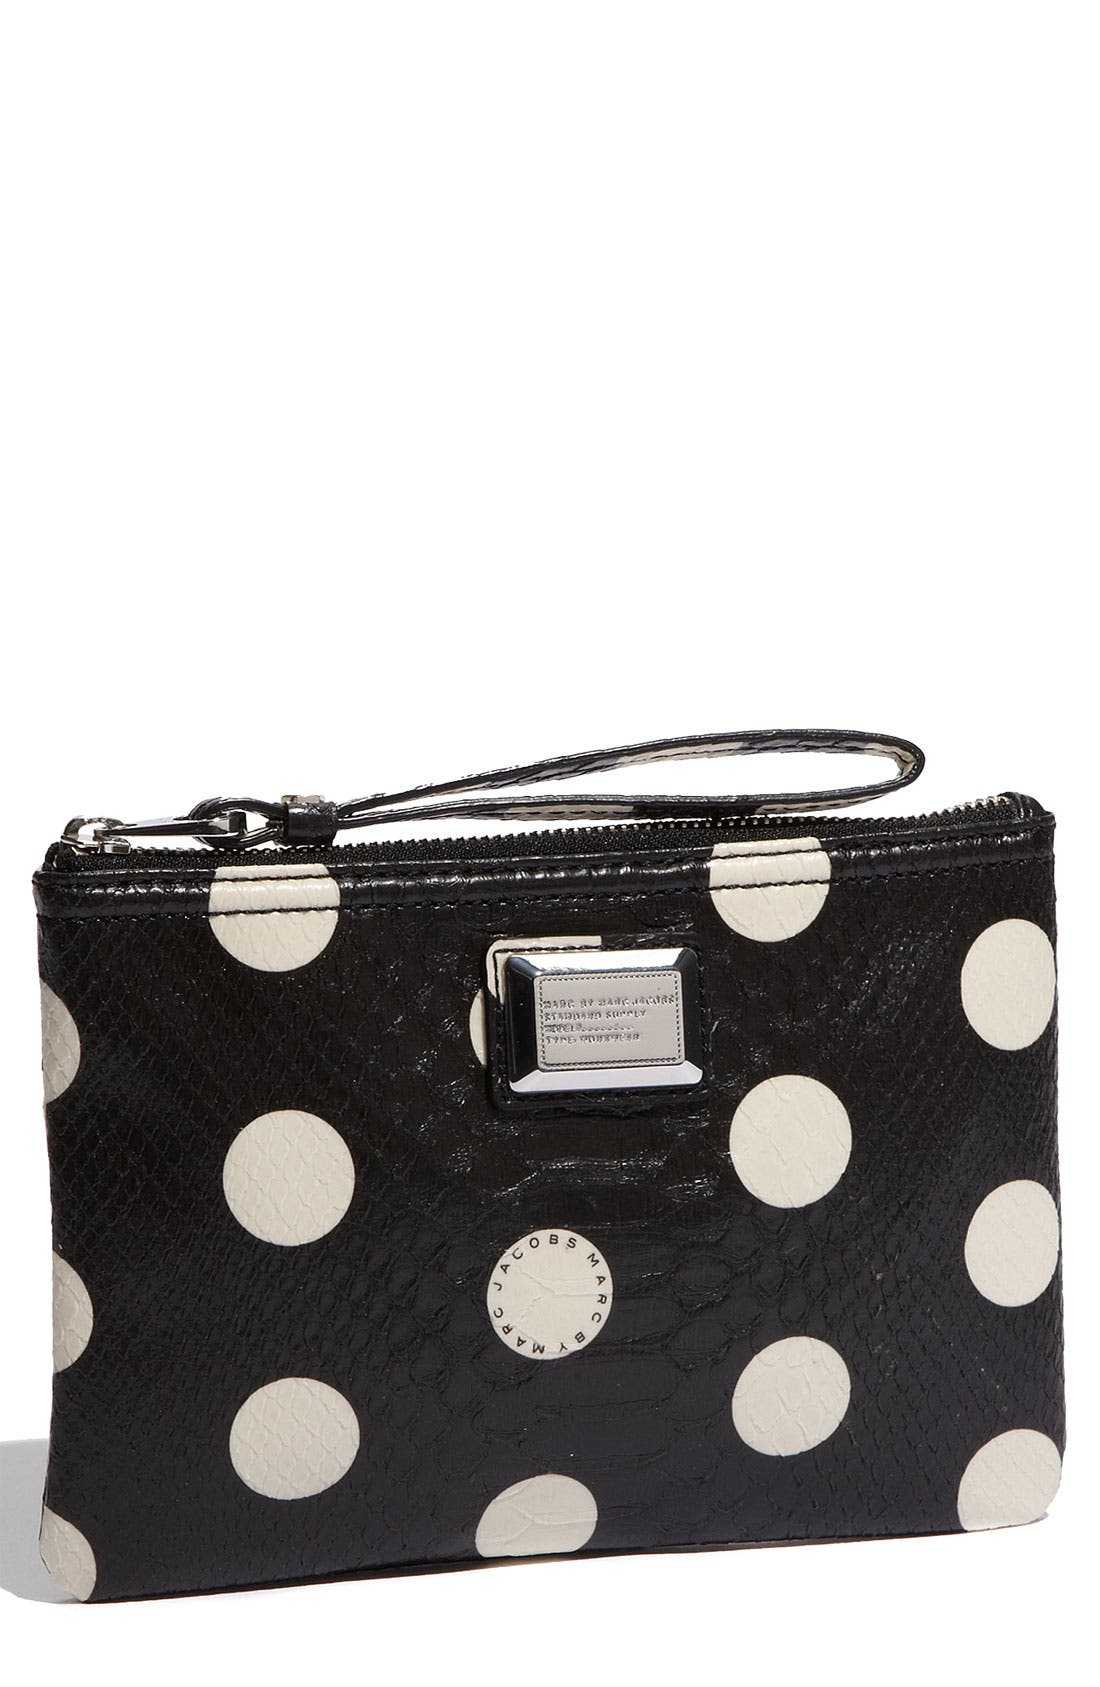 Alternate Image 1 Selected - MARC BY MARC JACOBS 'Dotty Snake' Faux Leather Wristlet